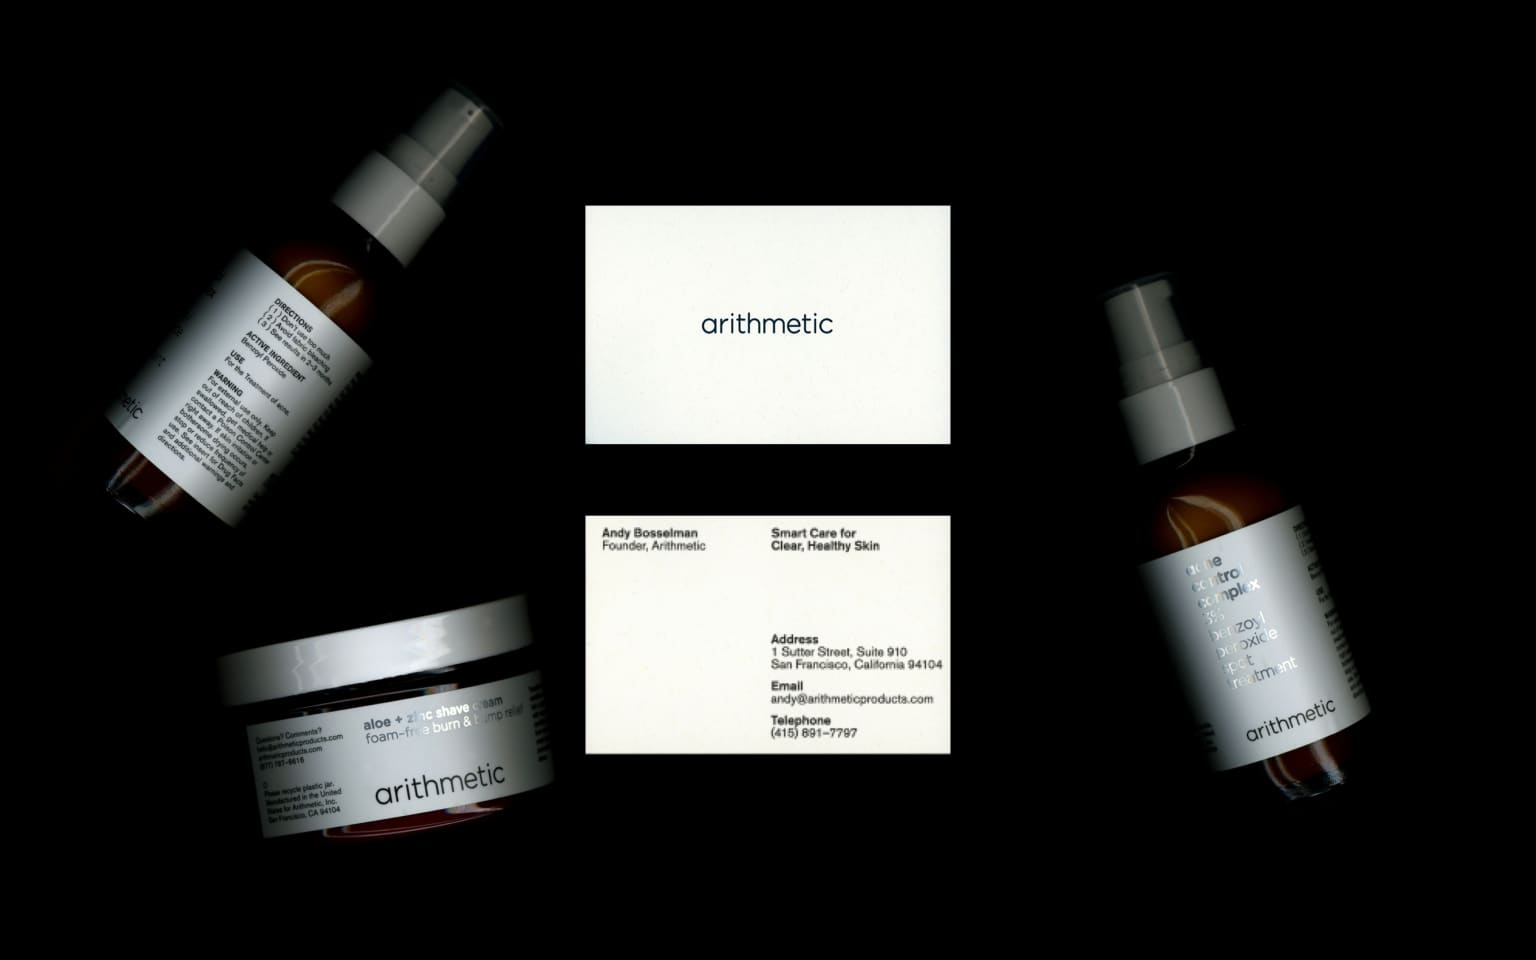 Arithmetic Identity & Packaging